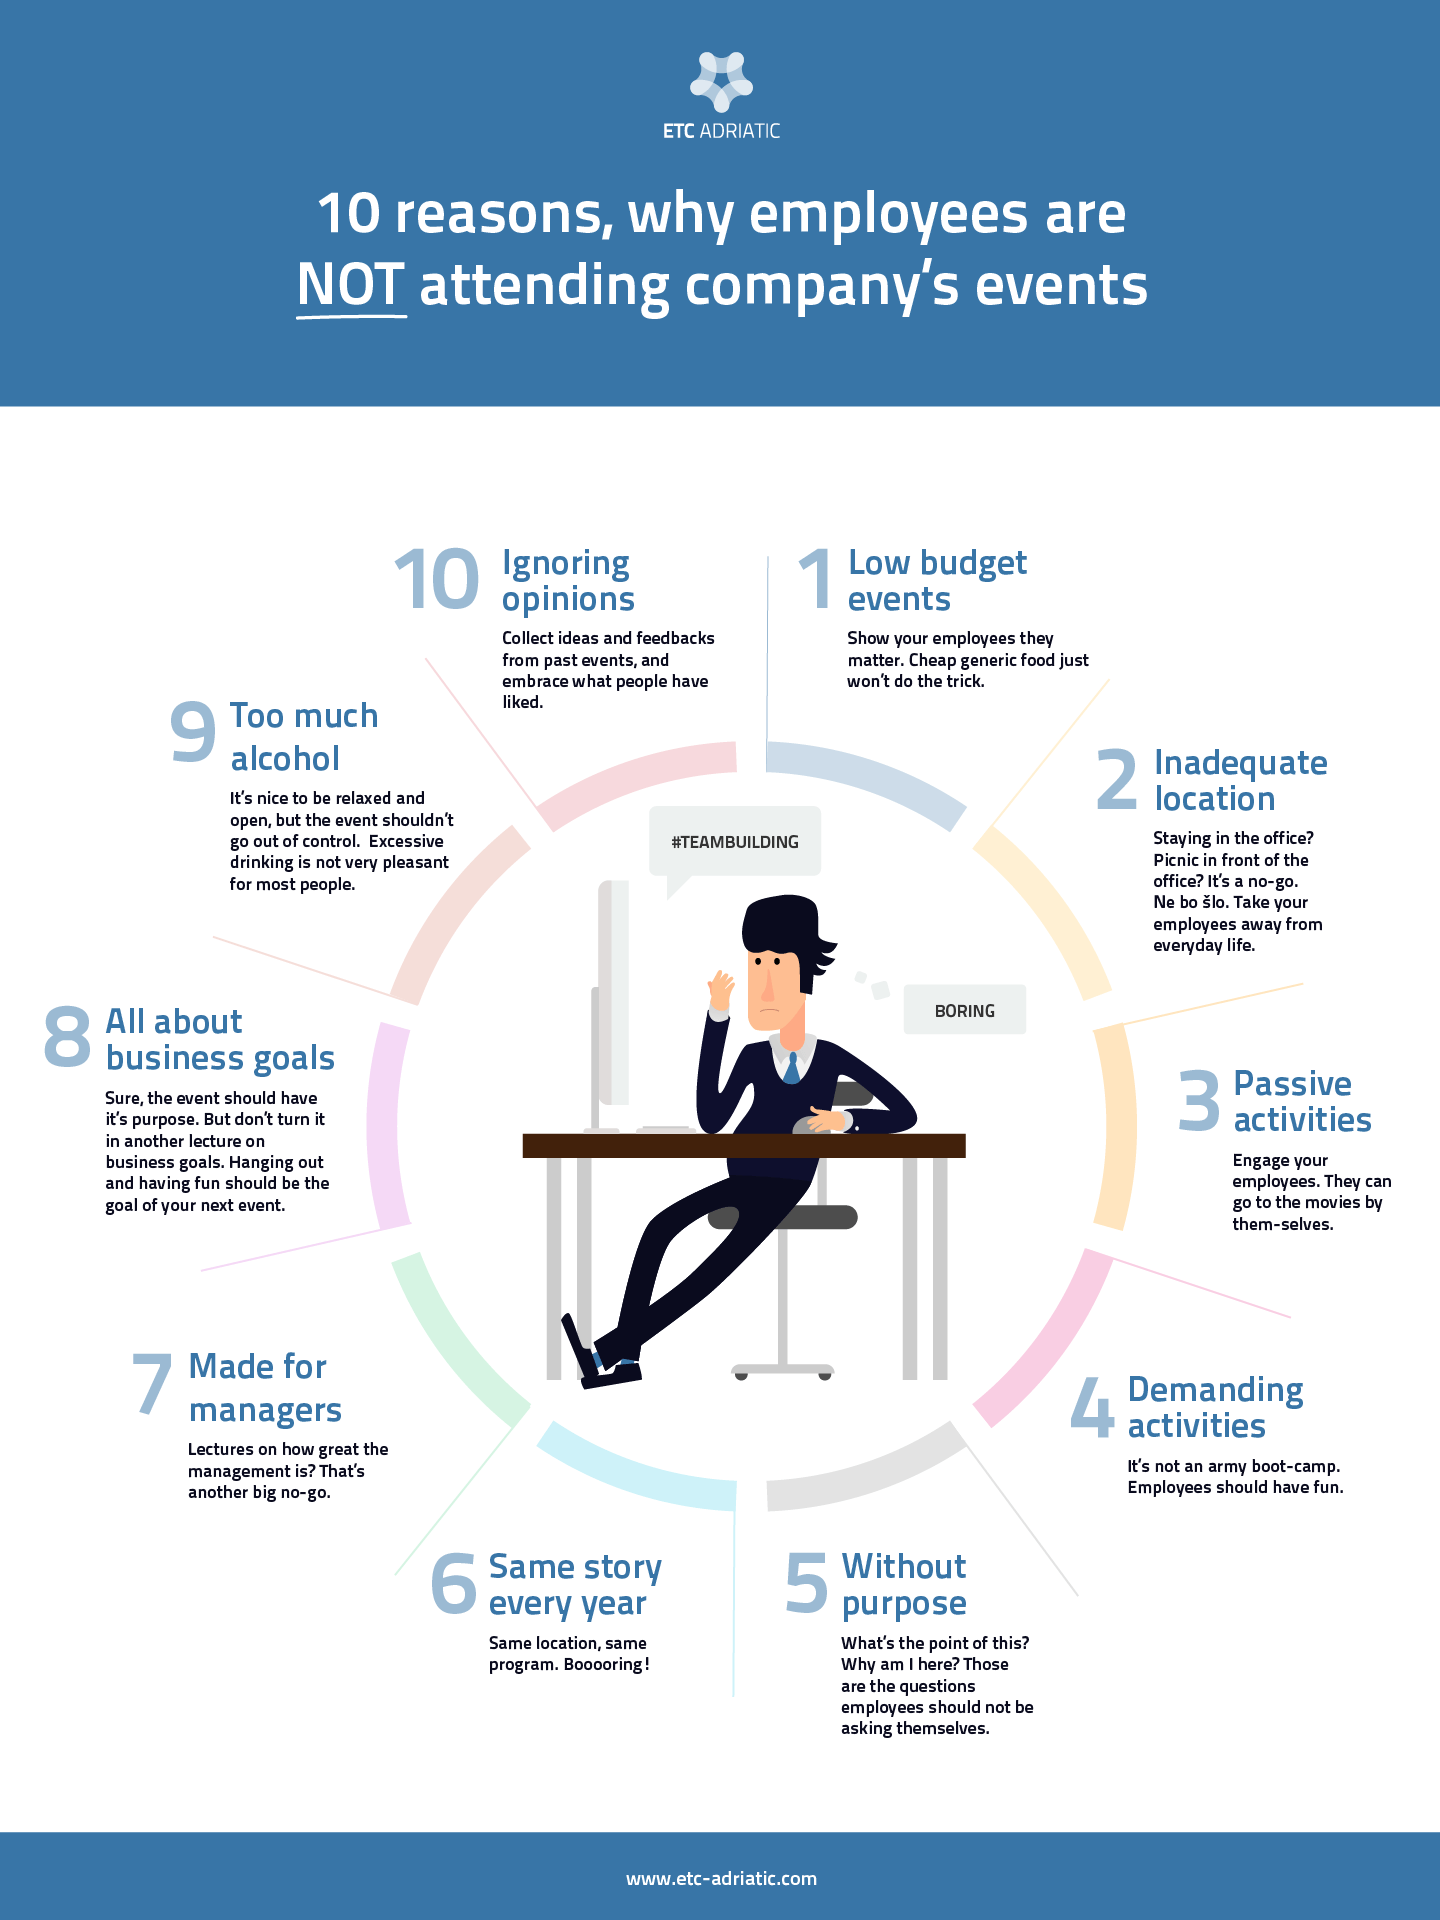 10 reasons, why employees are NOT attending company's events